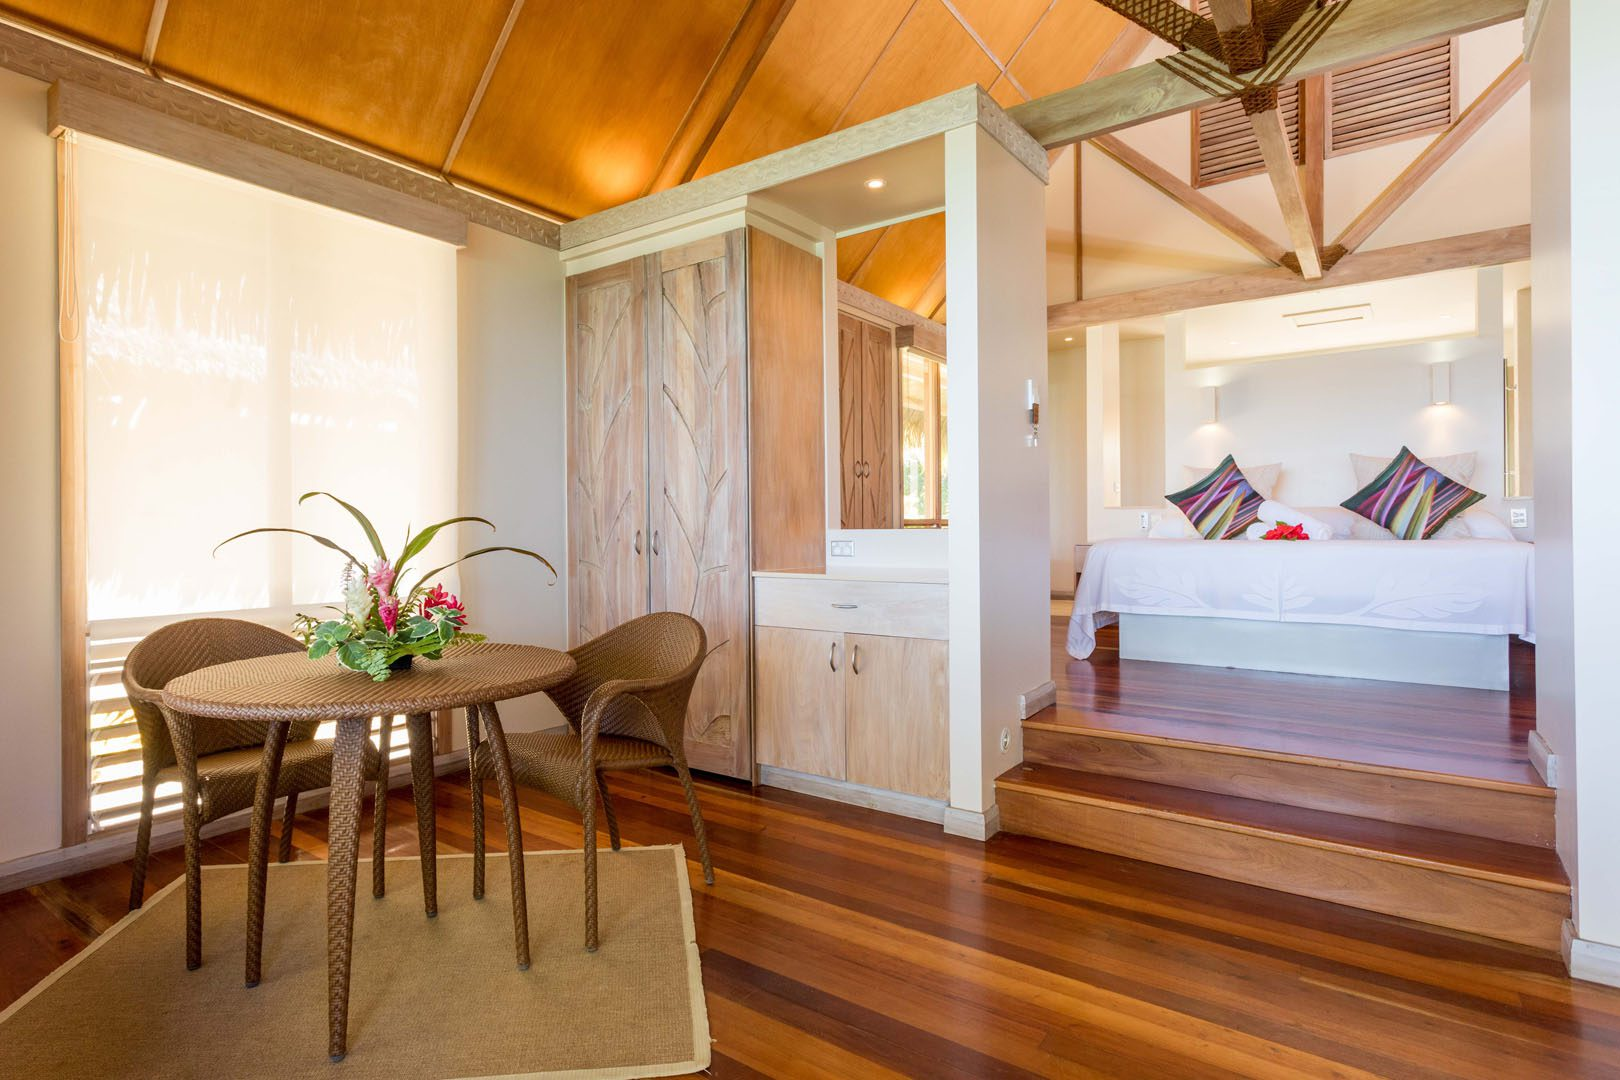 Modern & Elegant Polynesian inspired beachfront bungalow bedroom and living area